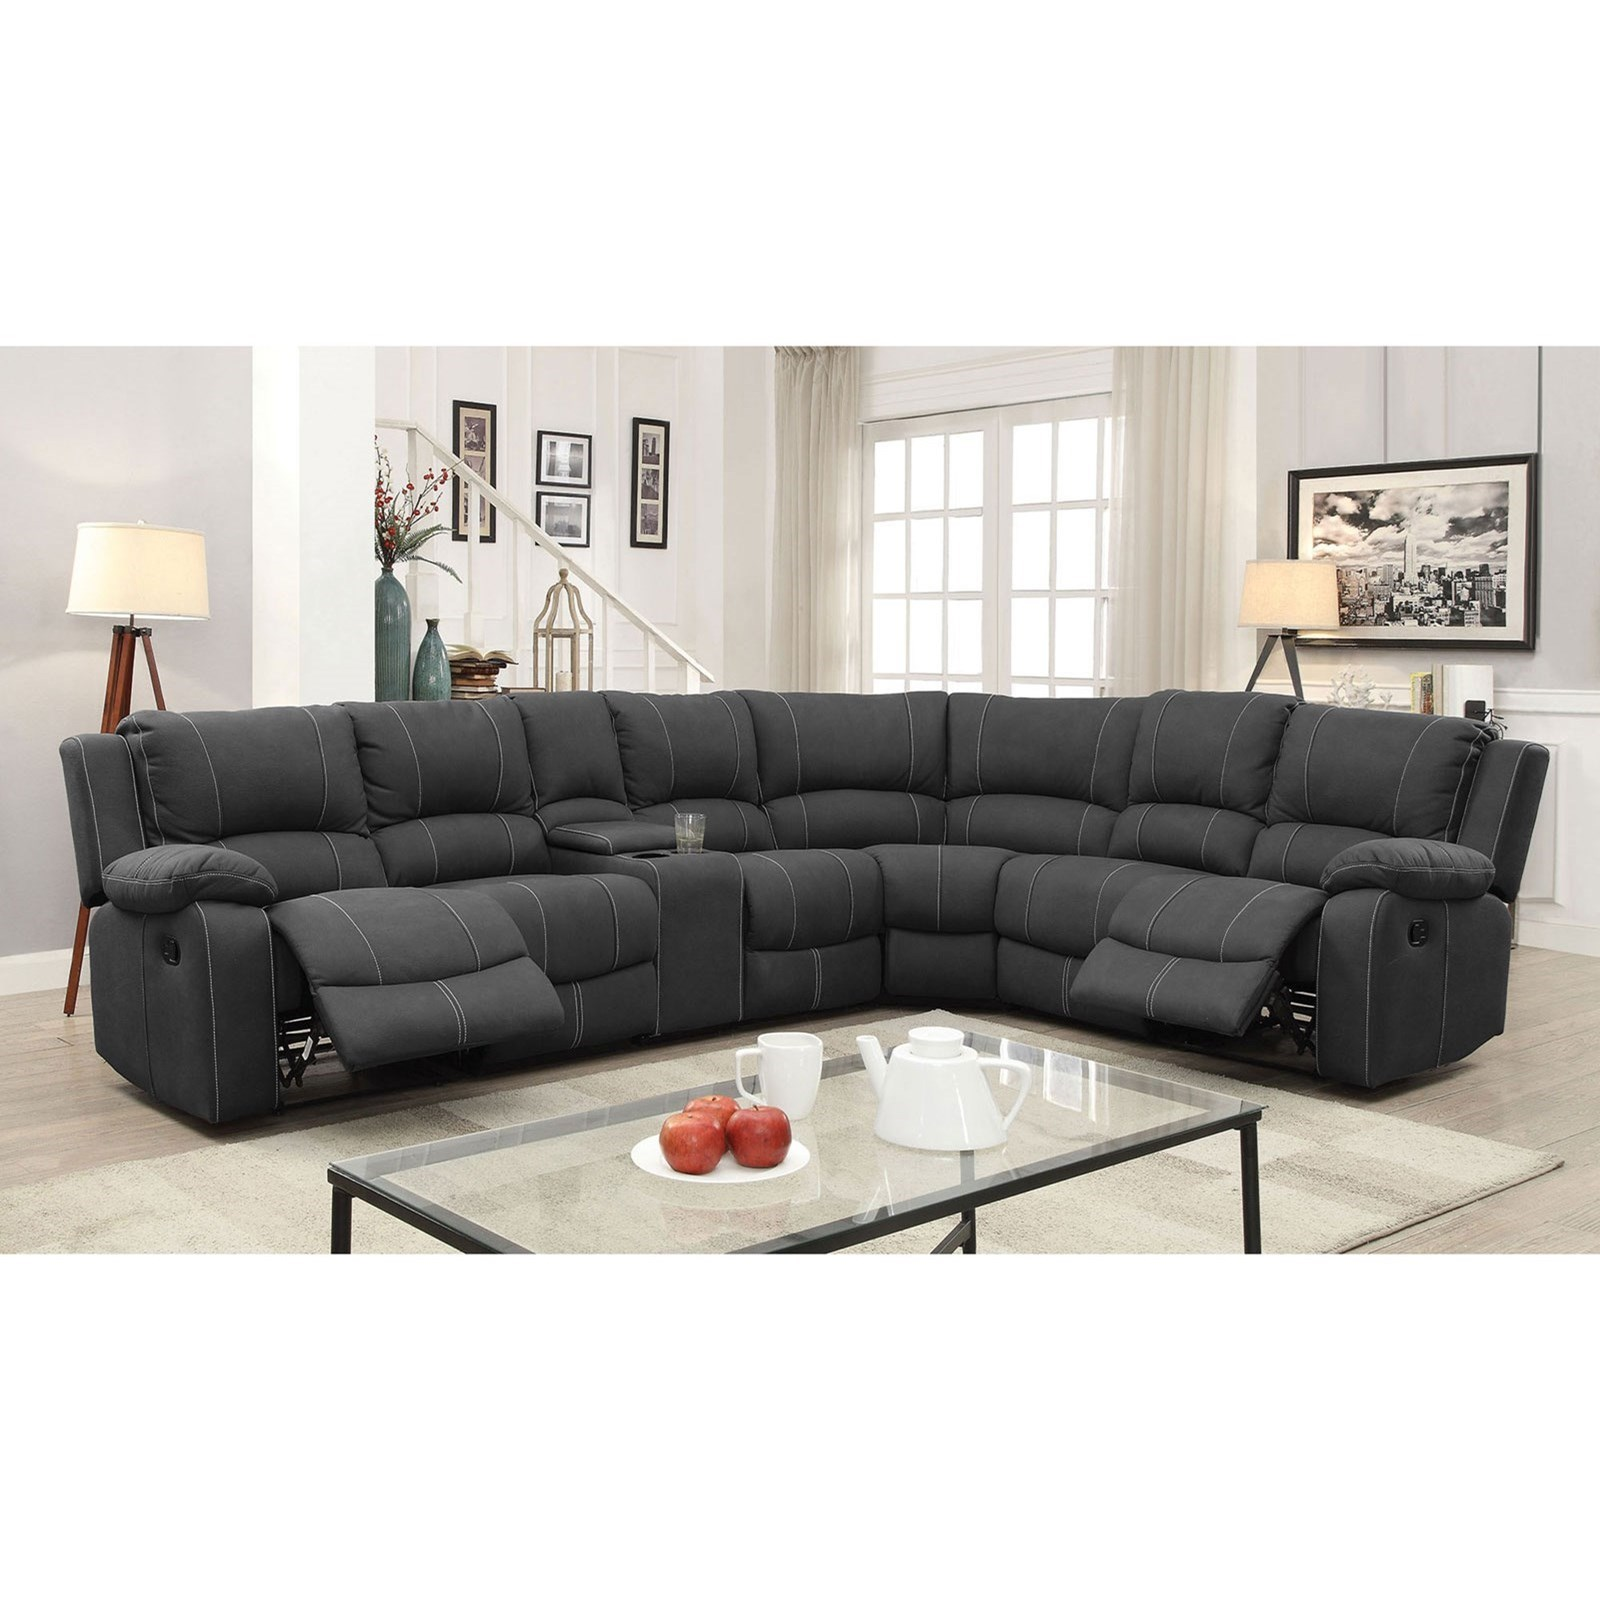 Living Room Furniture Ct: Furniture Of America Monique 5 Seat Reclining Sectional